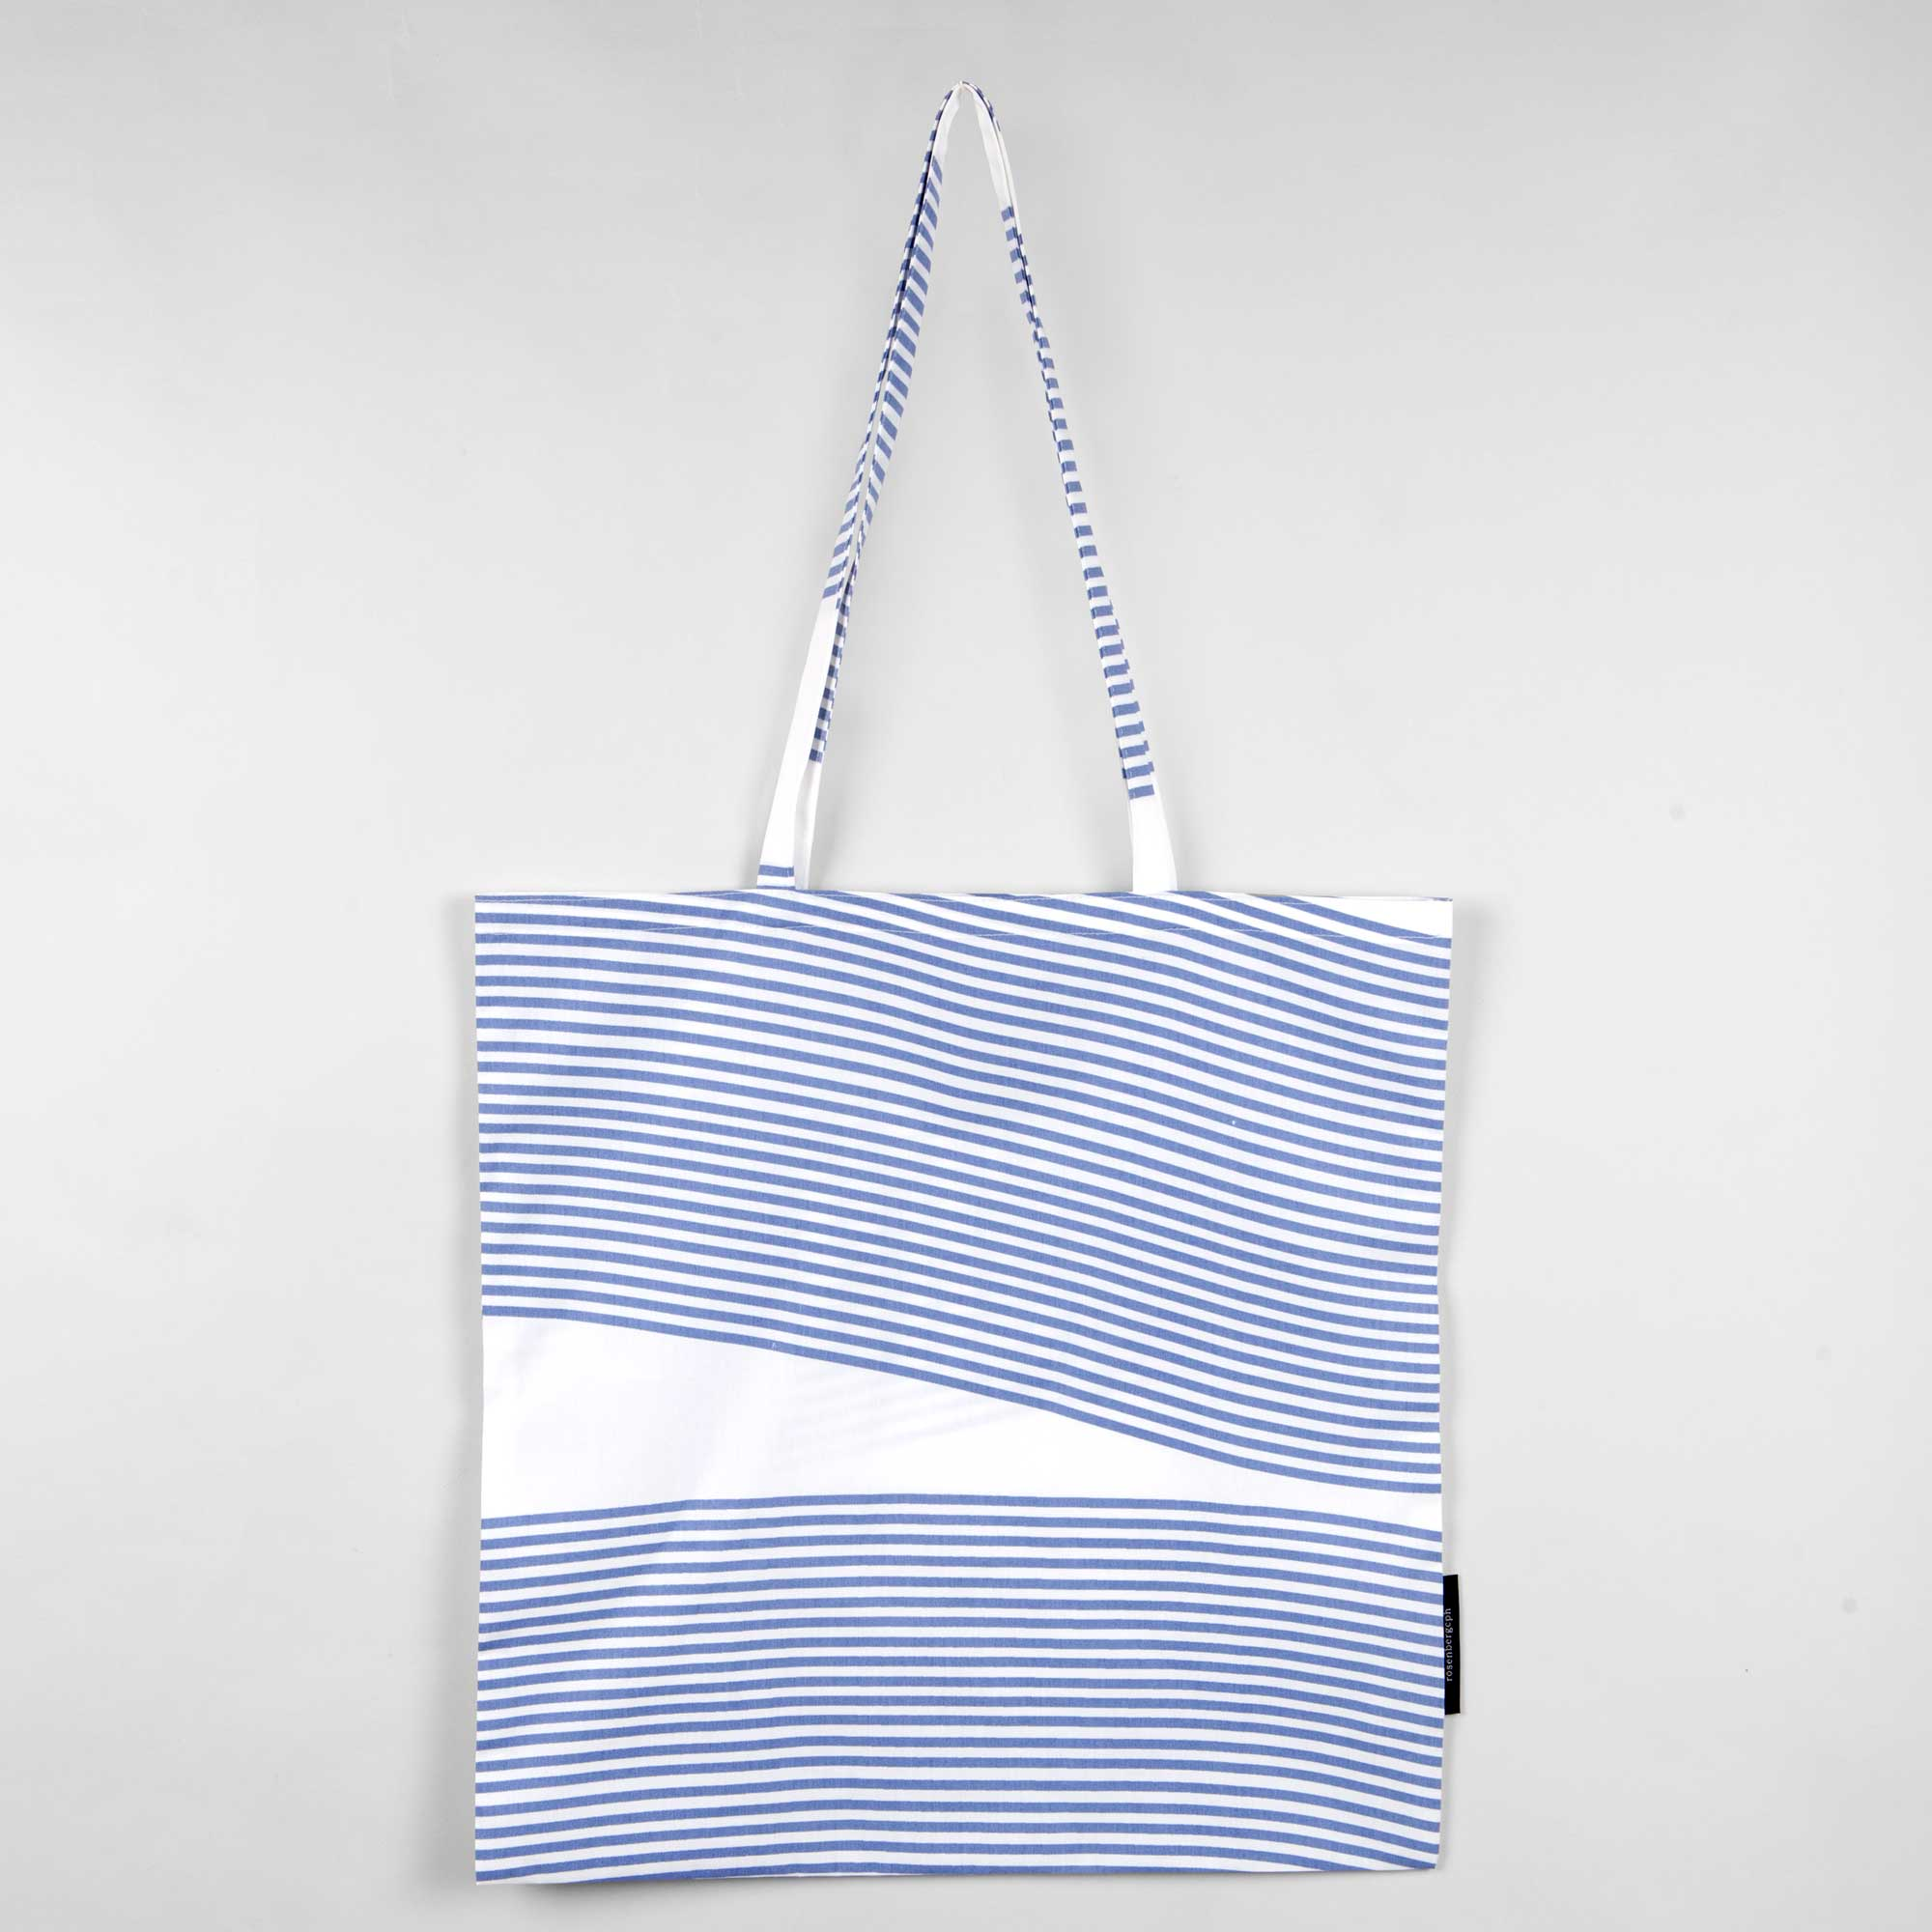 Shopping bag, Weave pale rose, organic cotton